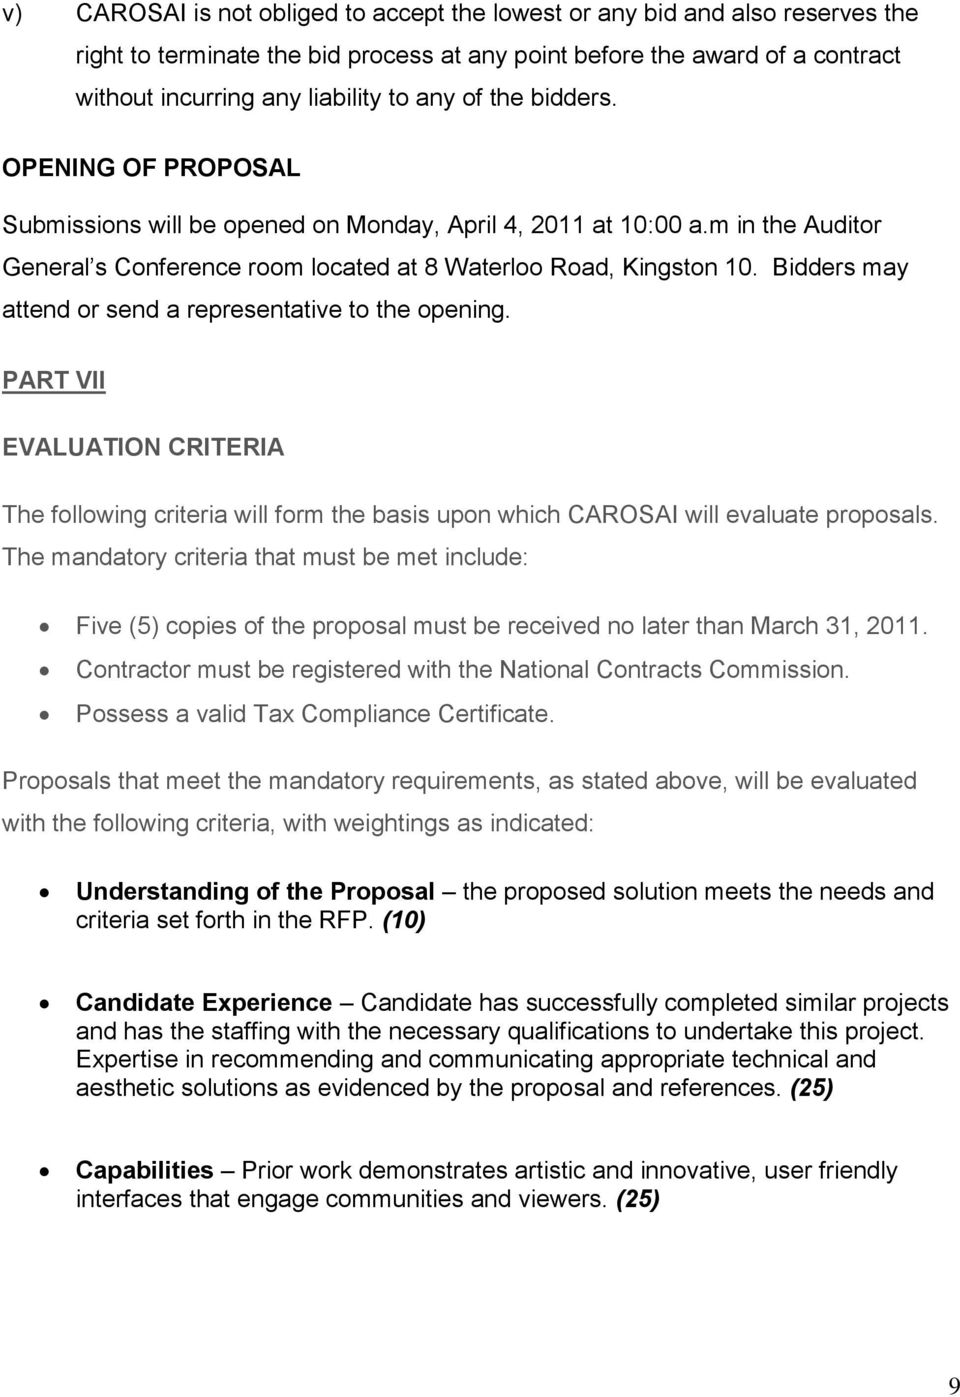 Bidders may attend or send a representative to the opening. PART VII EVALUATION CRITERIA The following criteria will form the basis upon which CAROSAI will evaluate proposals.